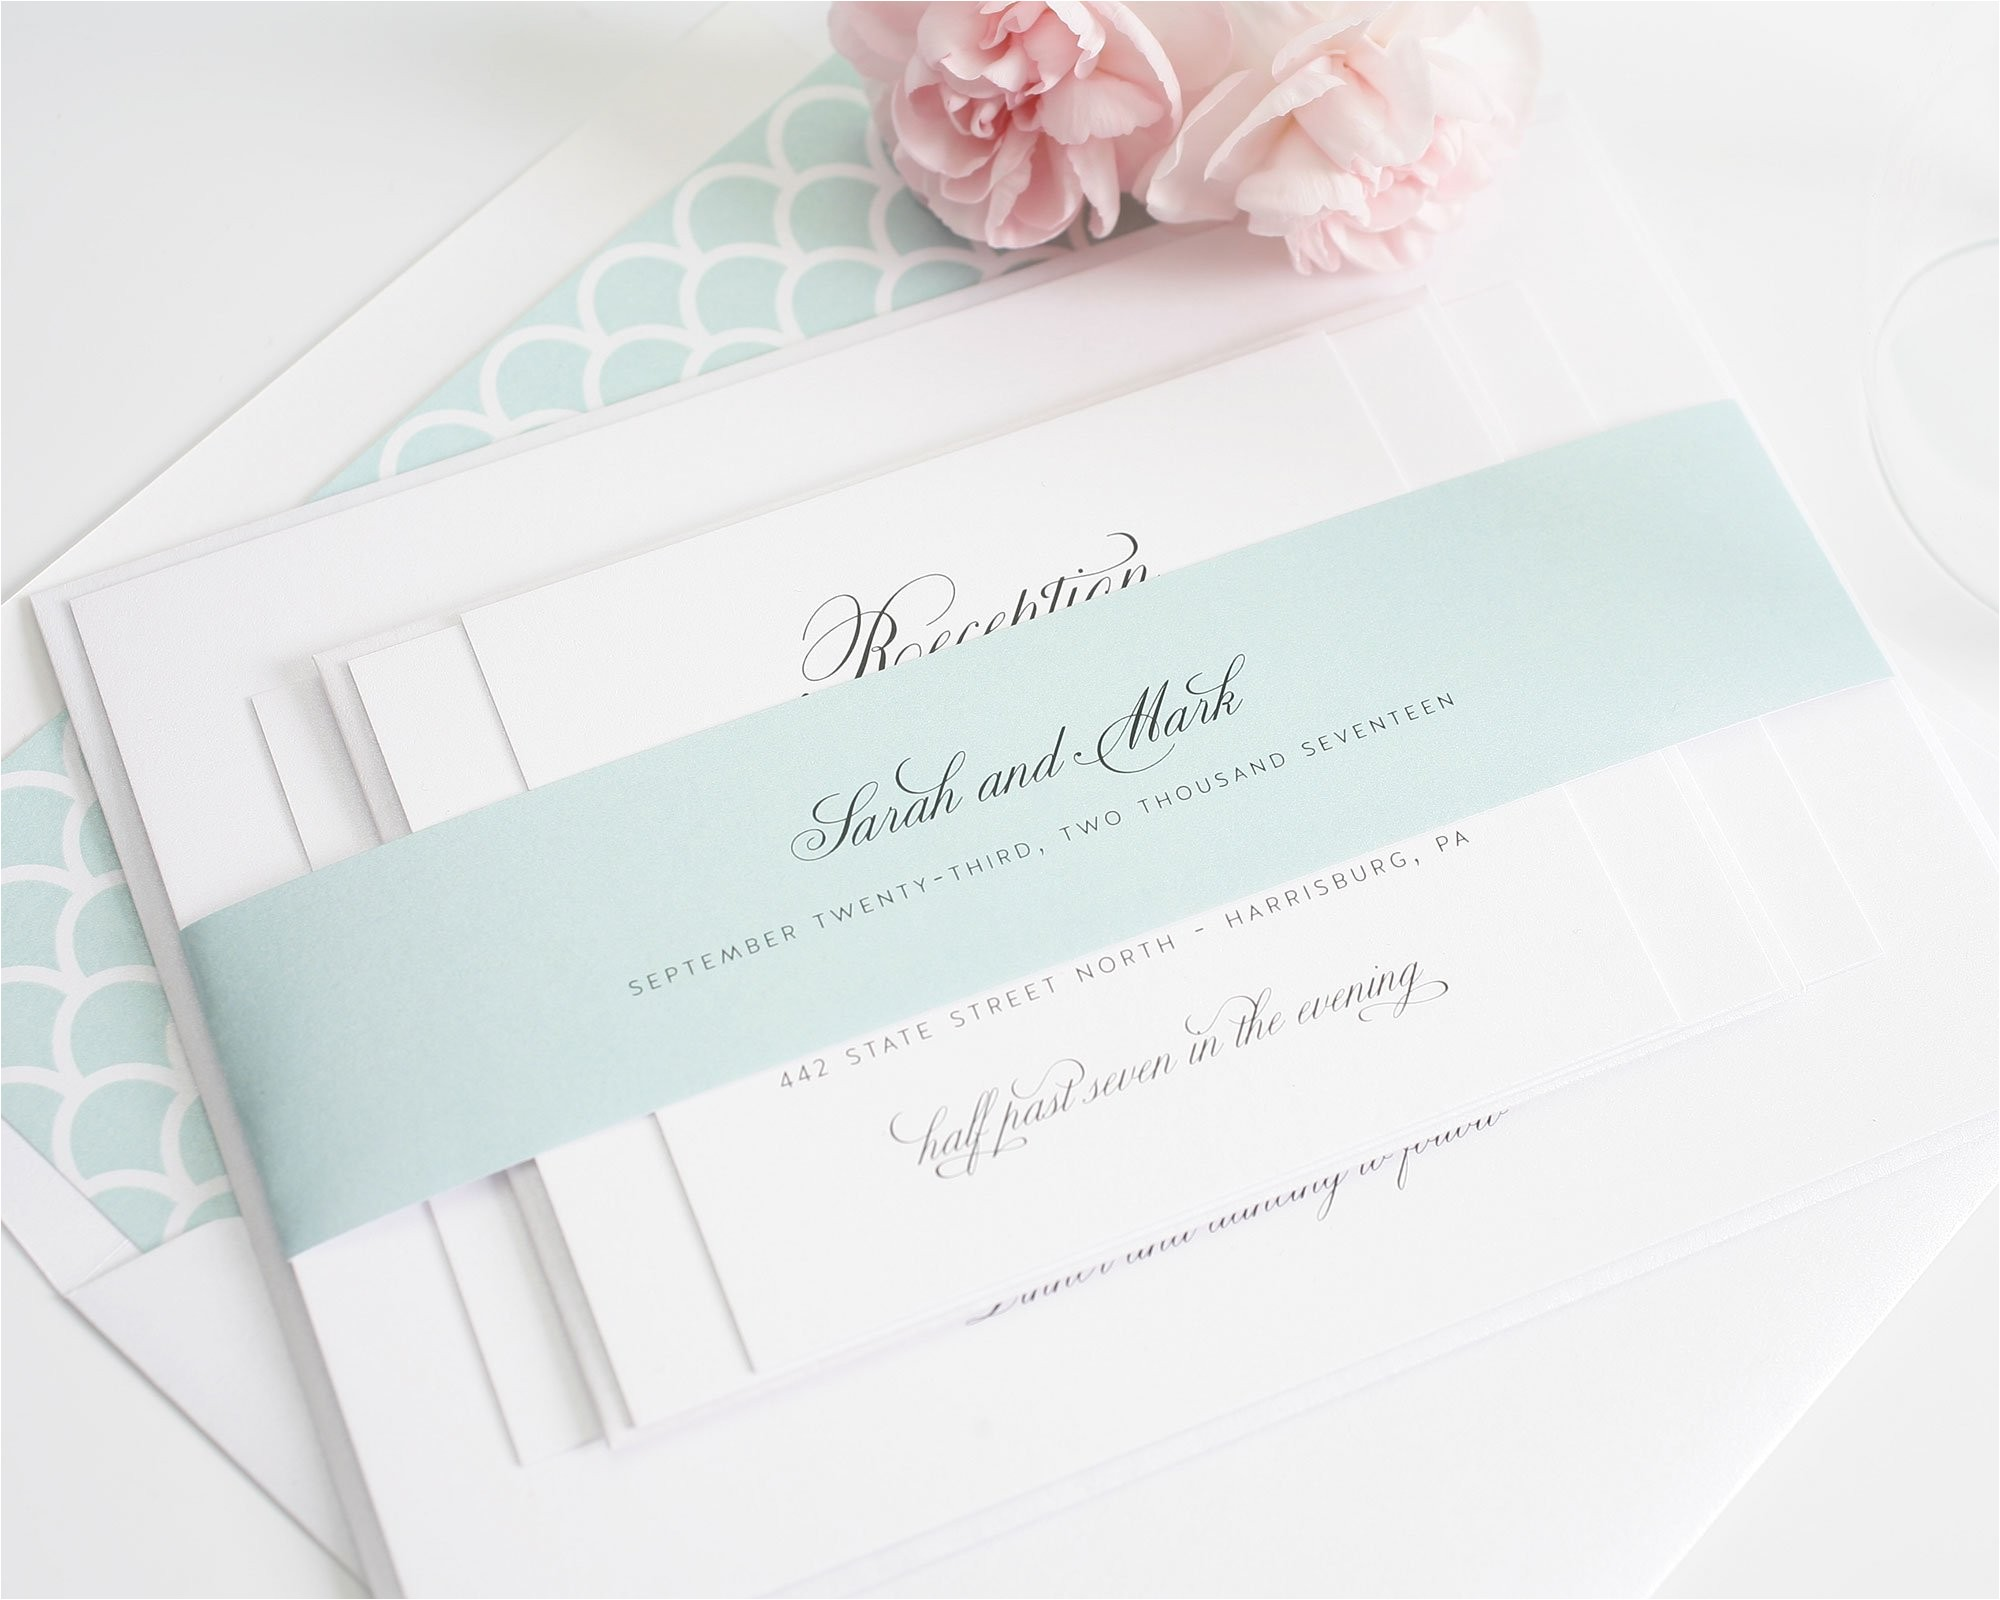 2015 wedding invitations a new collection from shine wedding invitations